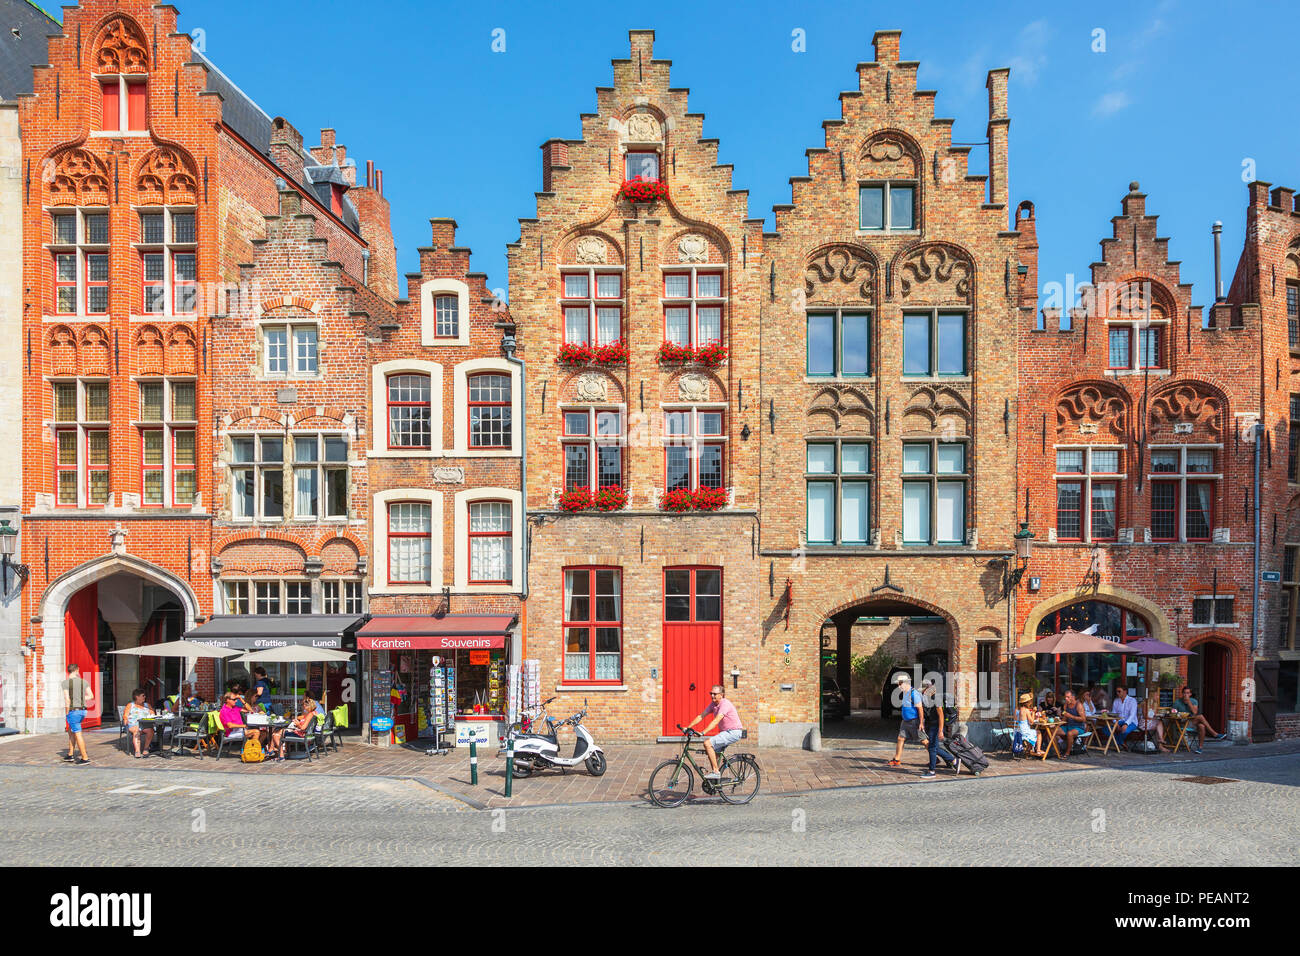 Cafes, restaurants and shops on Academiestraat near Het Tolhuis and Jan van Eyckplein, Bruges, Belgium - Stock Image